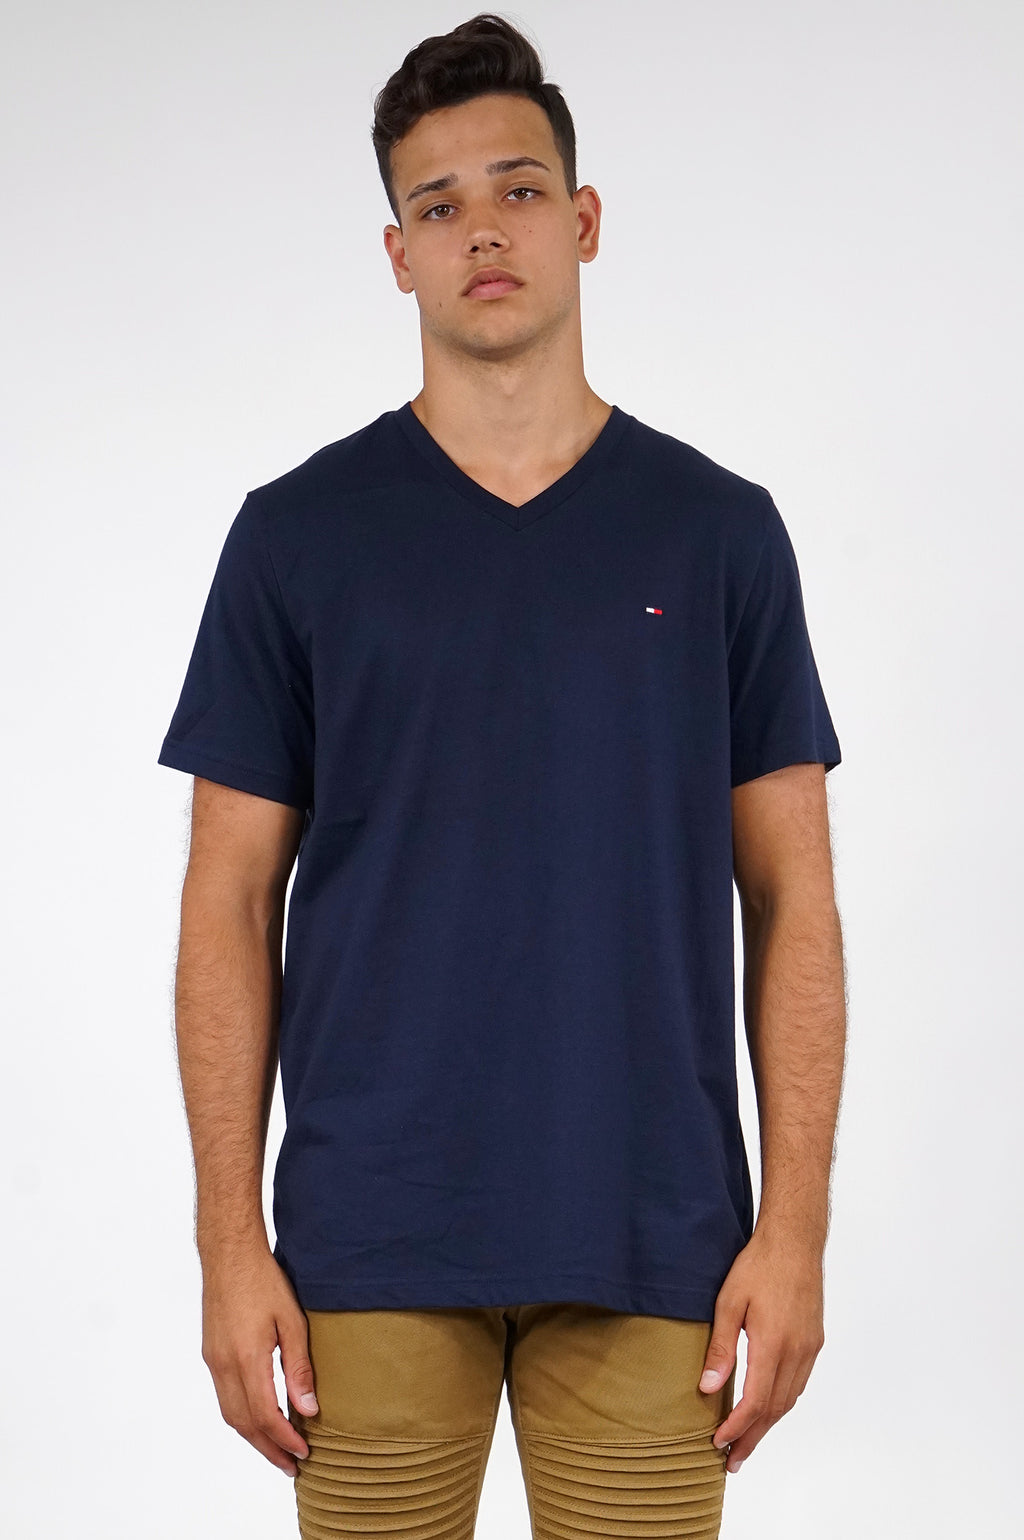 TOMMY HILFIGER LOUNGEWEAR MENS S/S CORE FLAG TEE